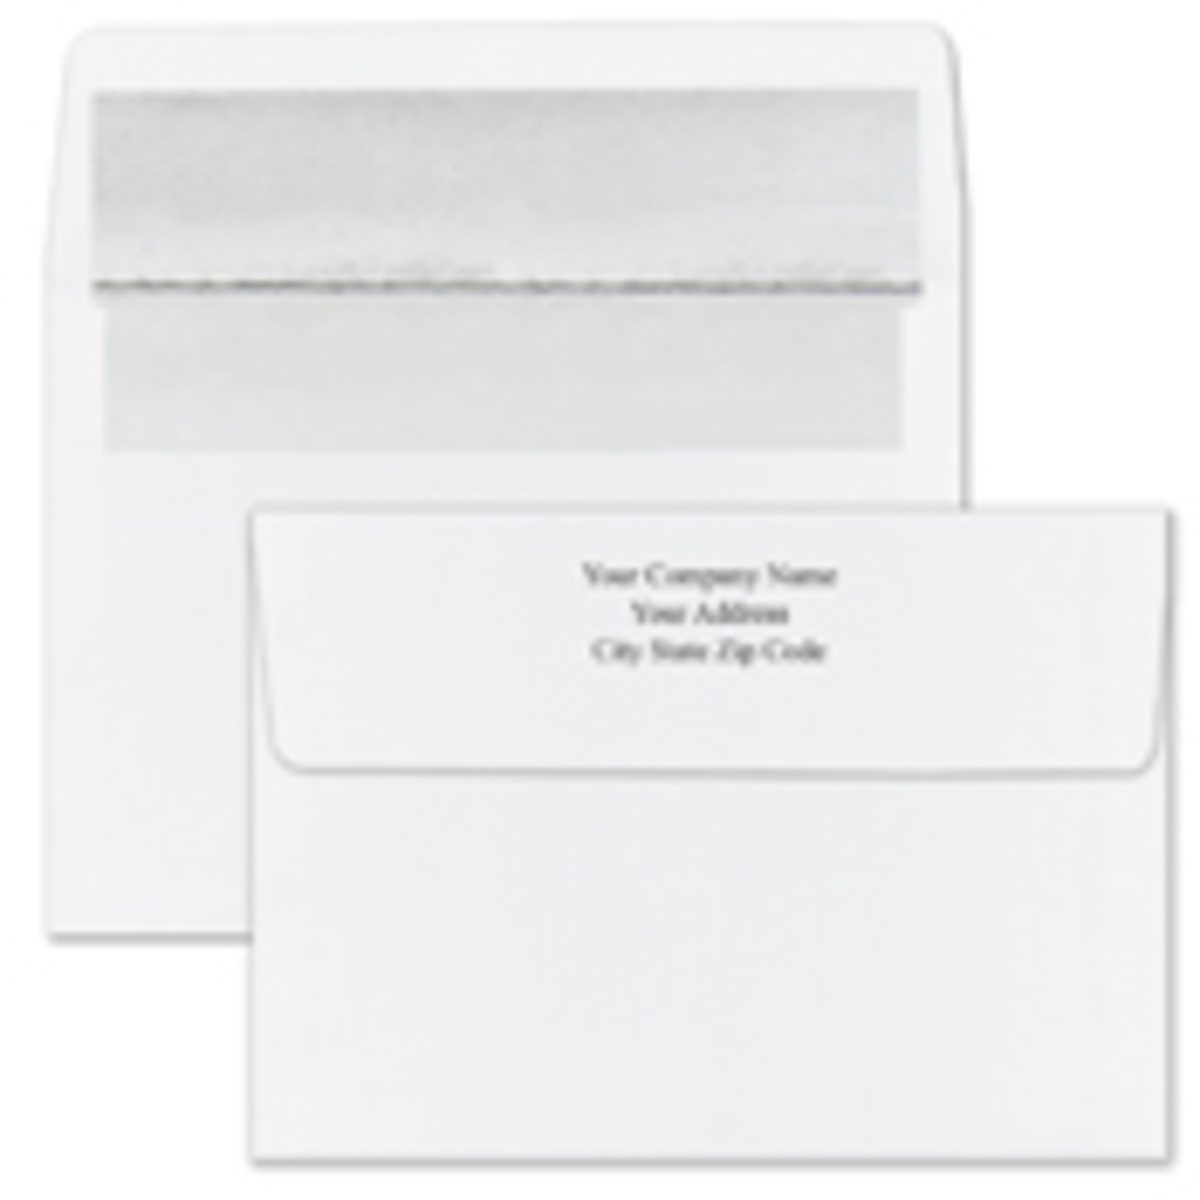 Recycled Silver Foil Lined White Envelope - Printed